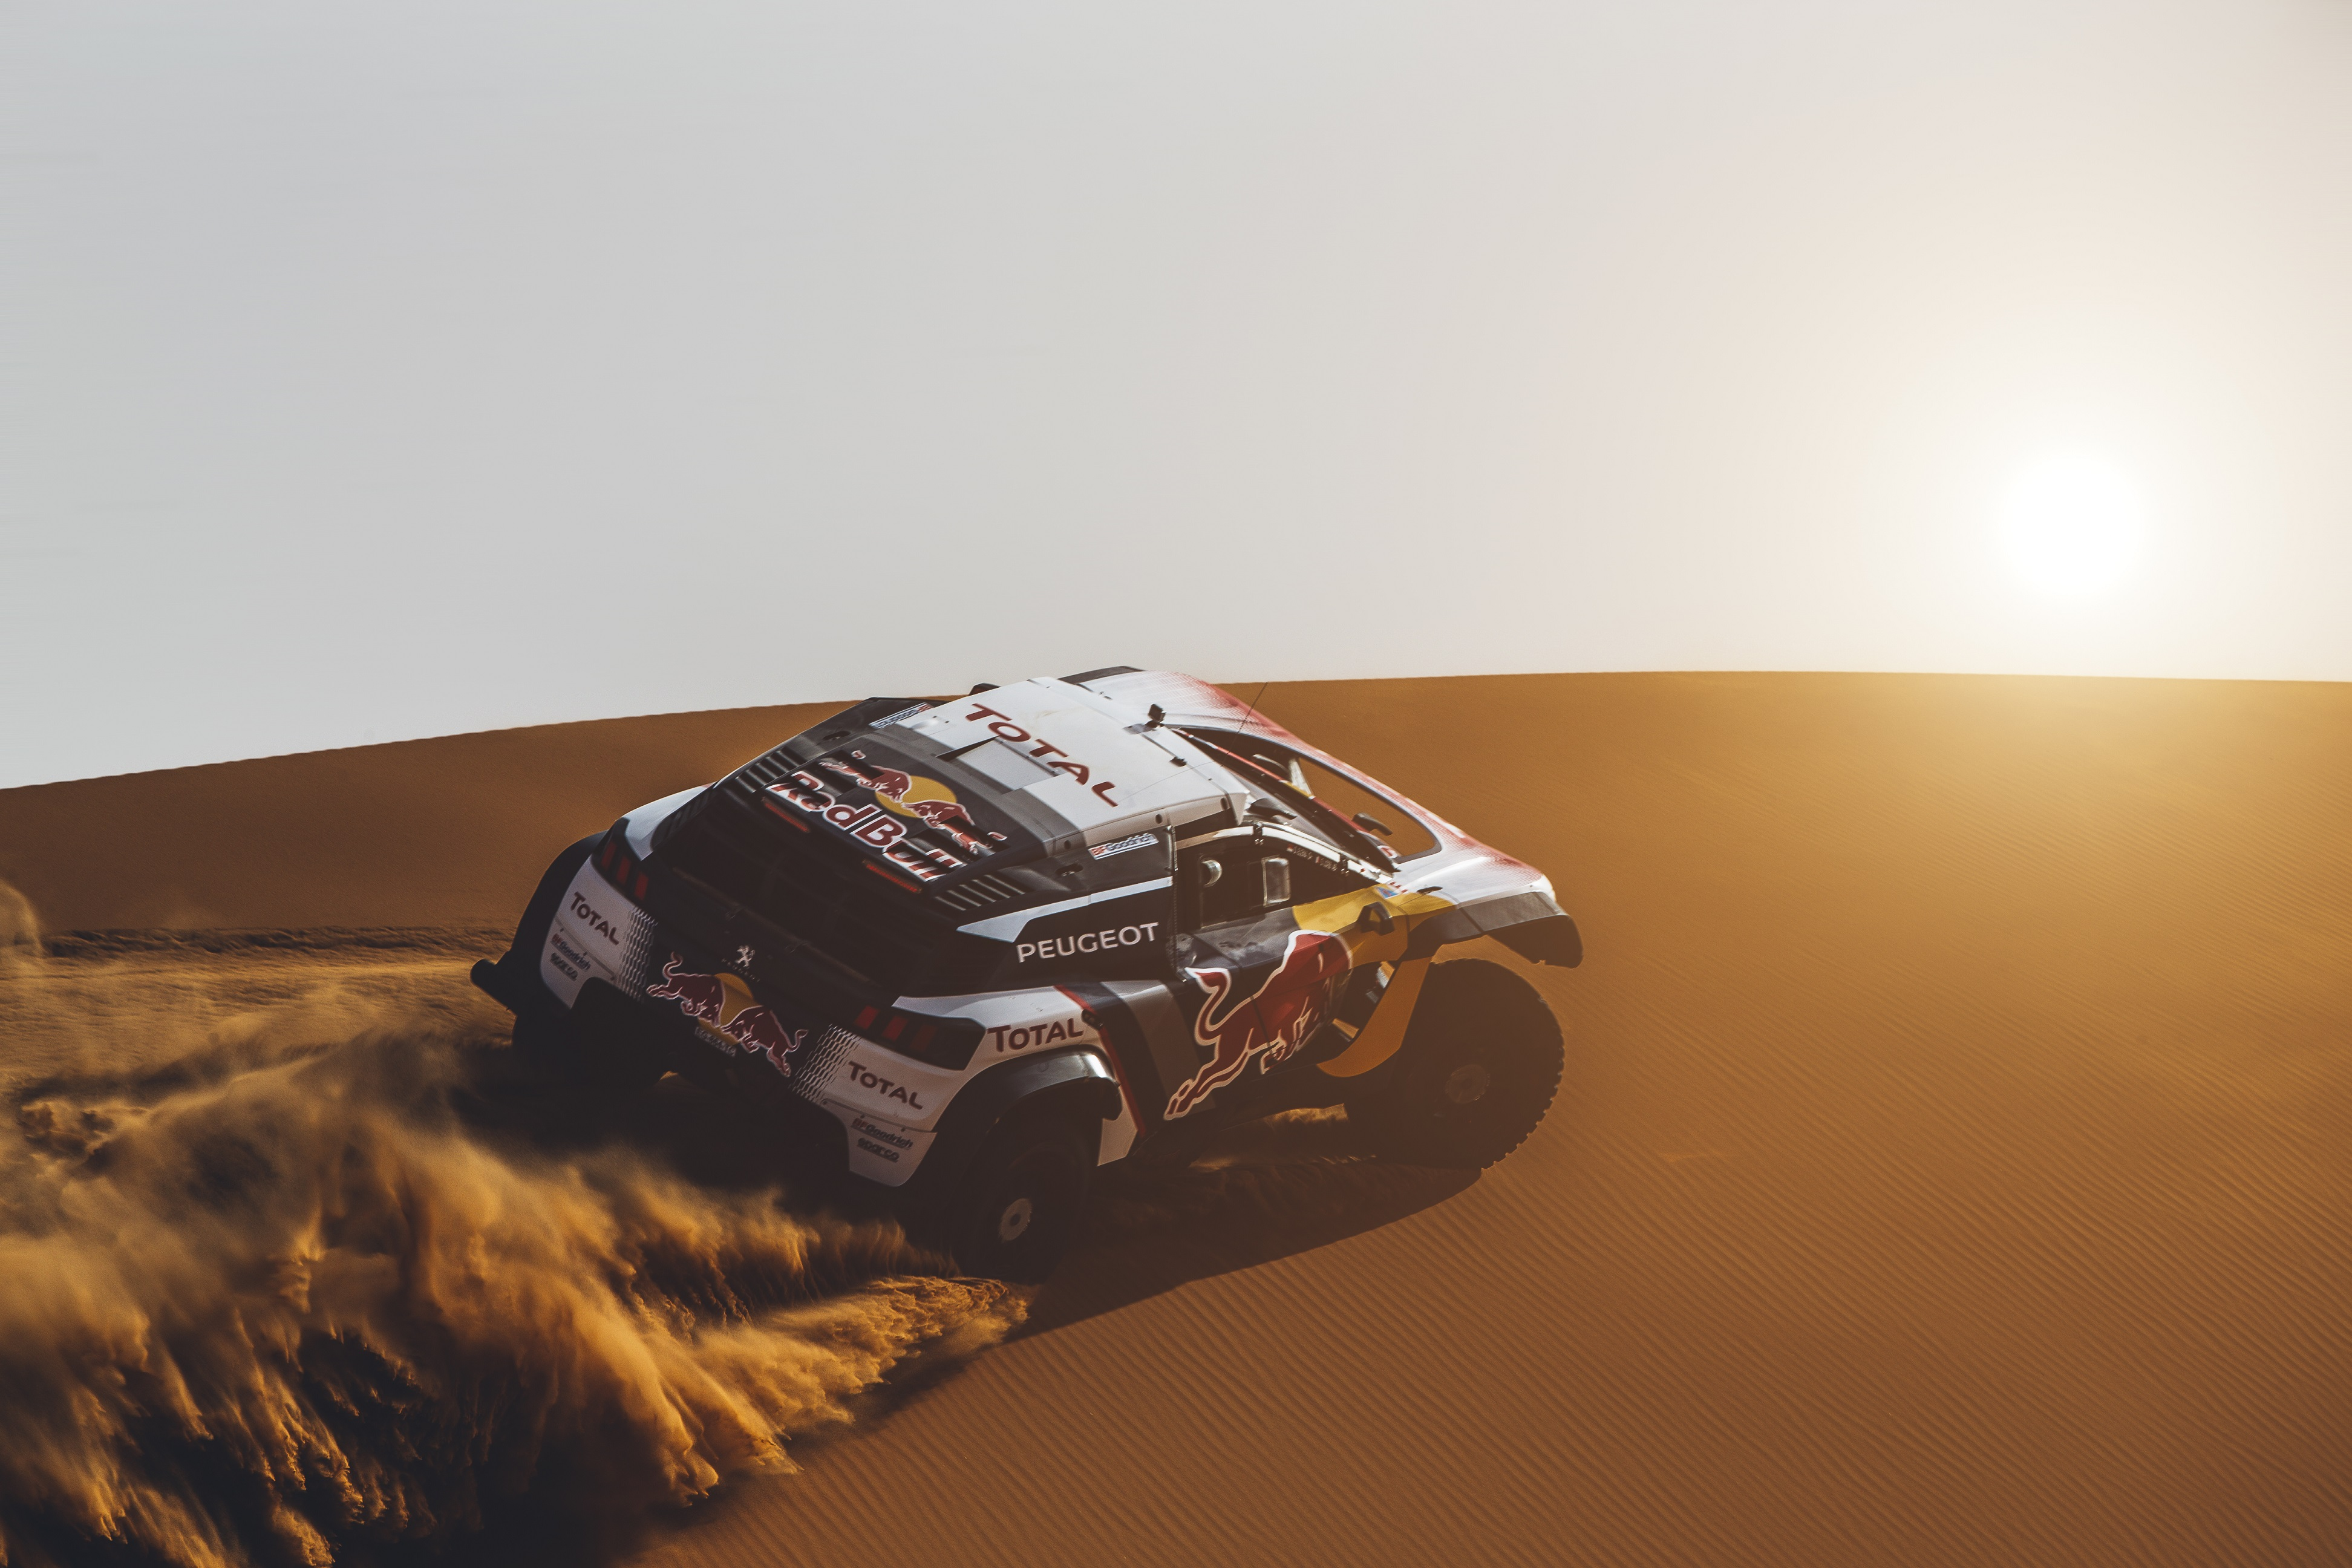 Stephane Peterhansel  from Team Peugeot Total performs during a test run with the new Peugeot 3008 DKR Maxi  in Erfoud, Morocco on September 14, 2017